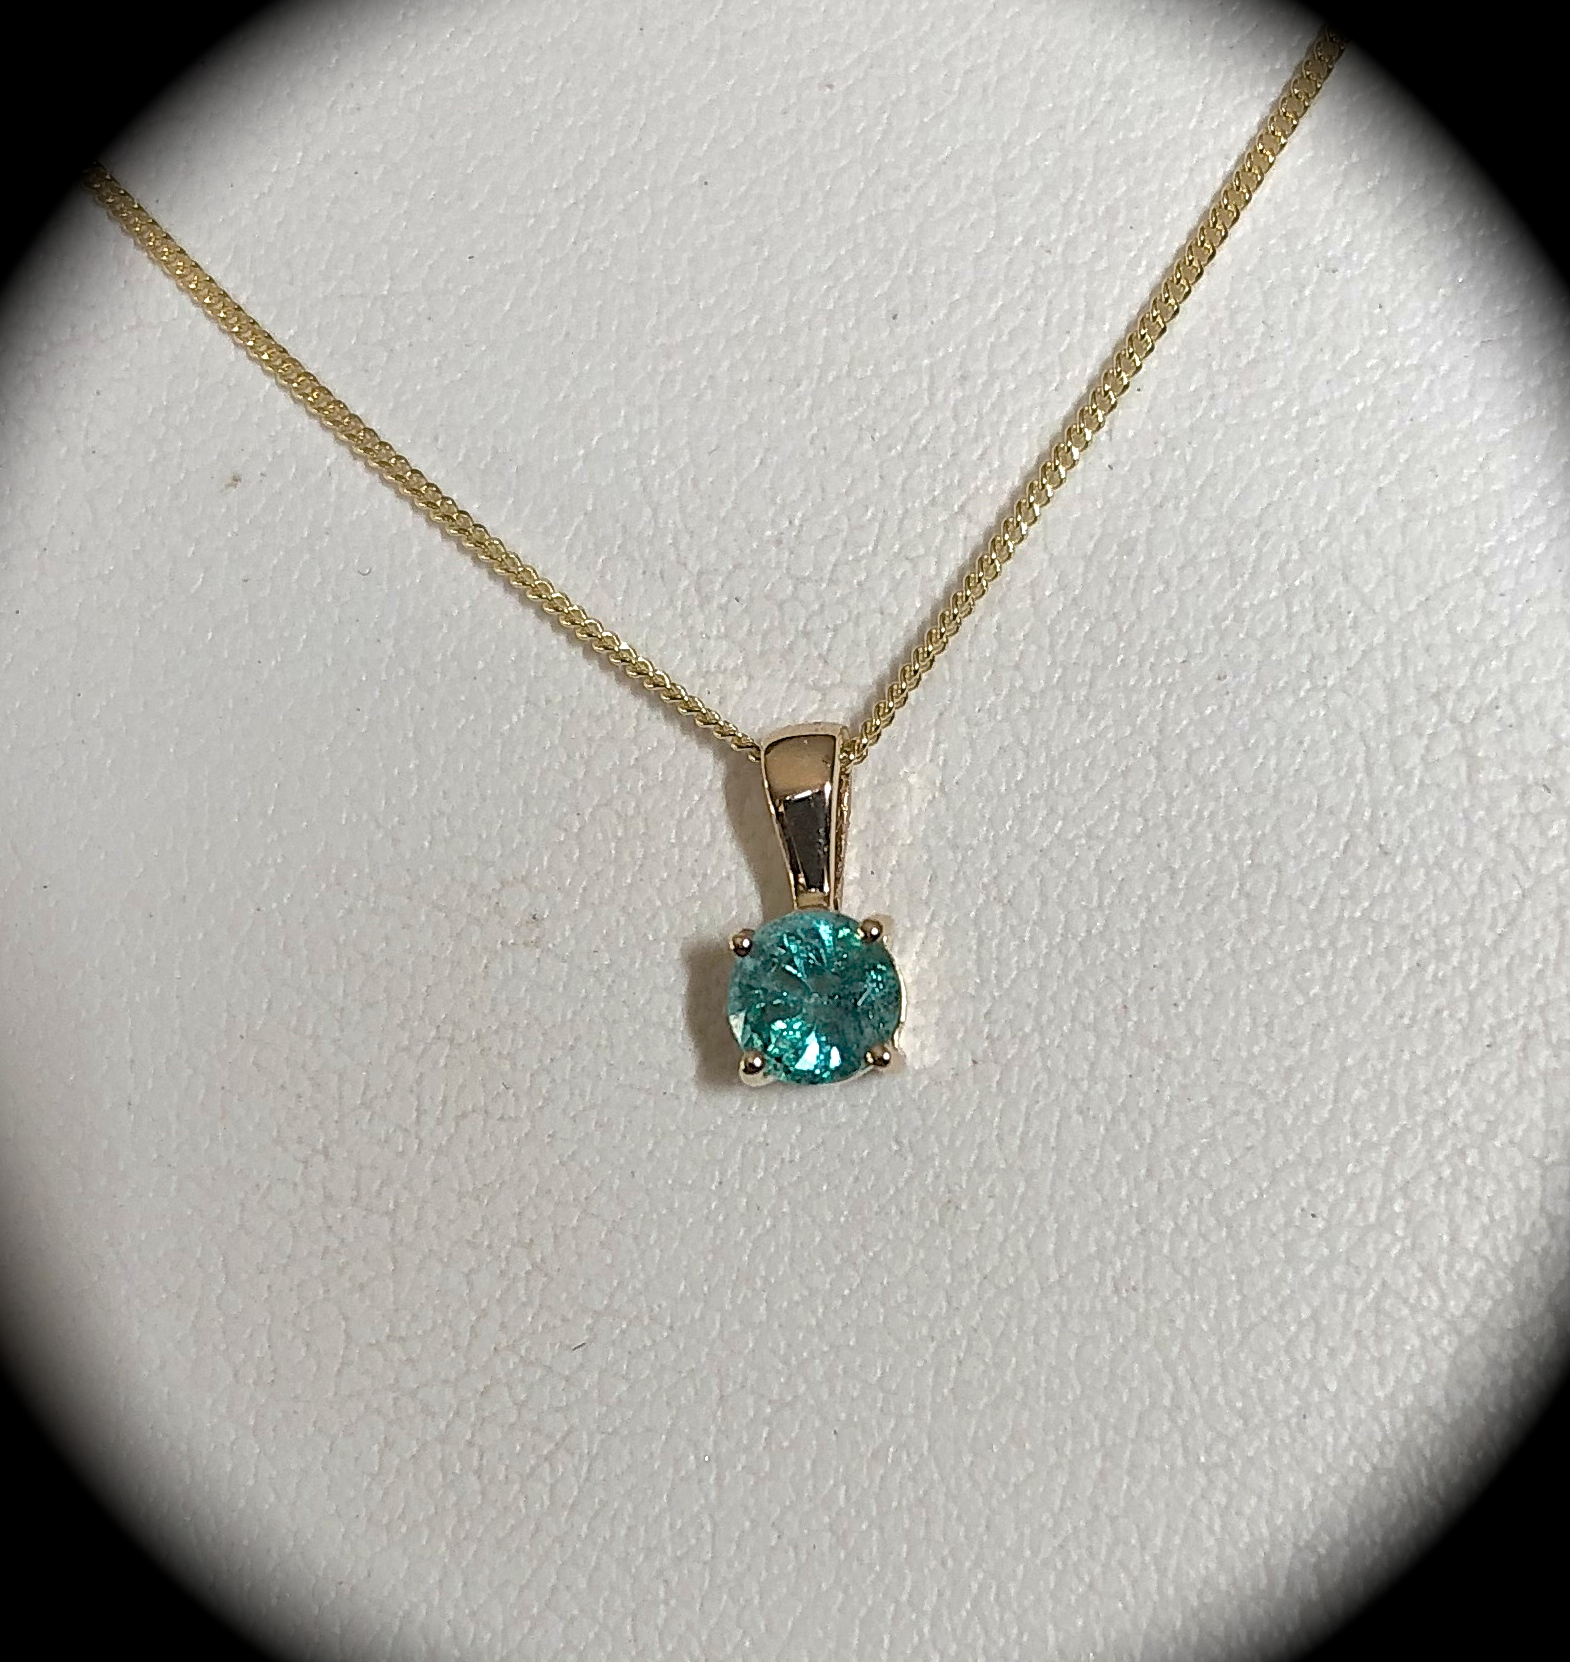 margaret designers gold necklace emerald pendant zoom product in nd lemx solow natural